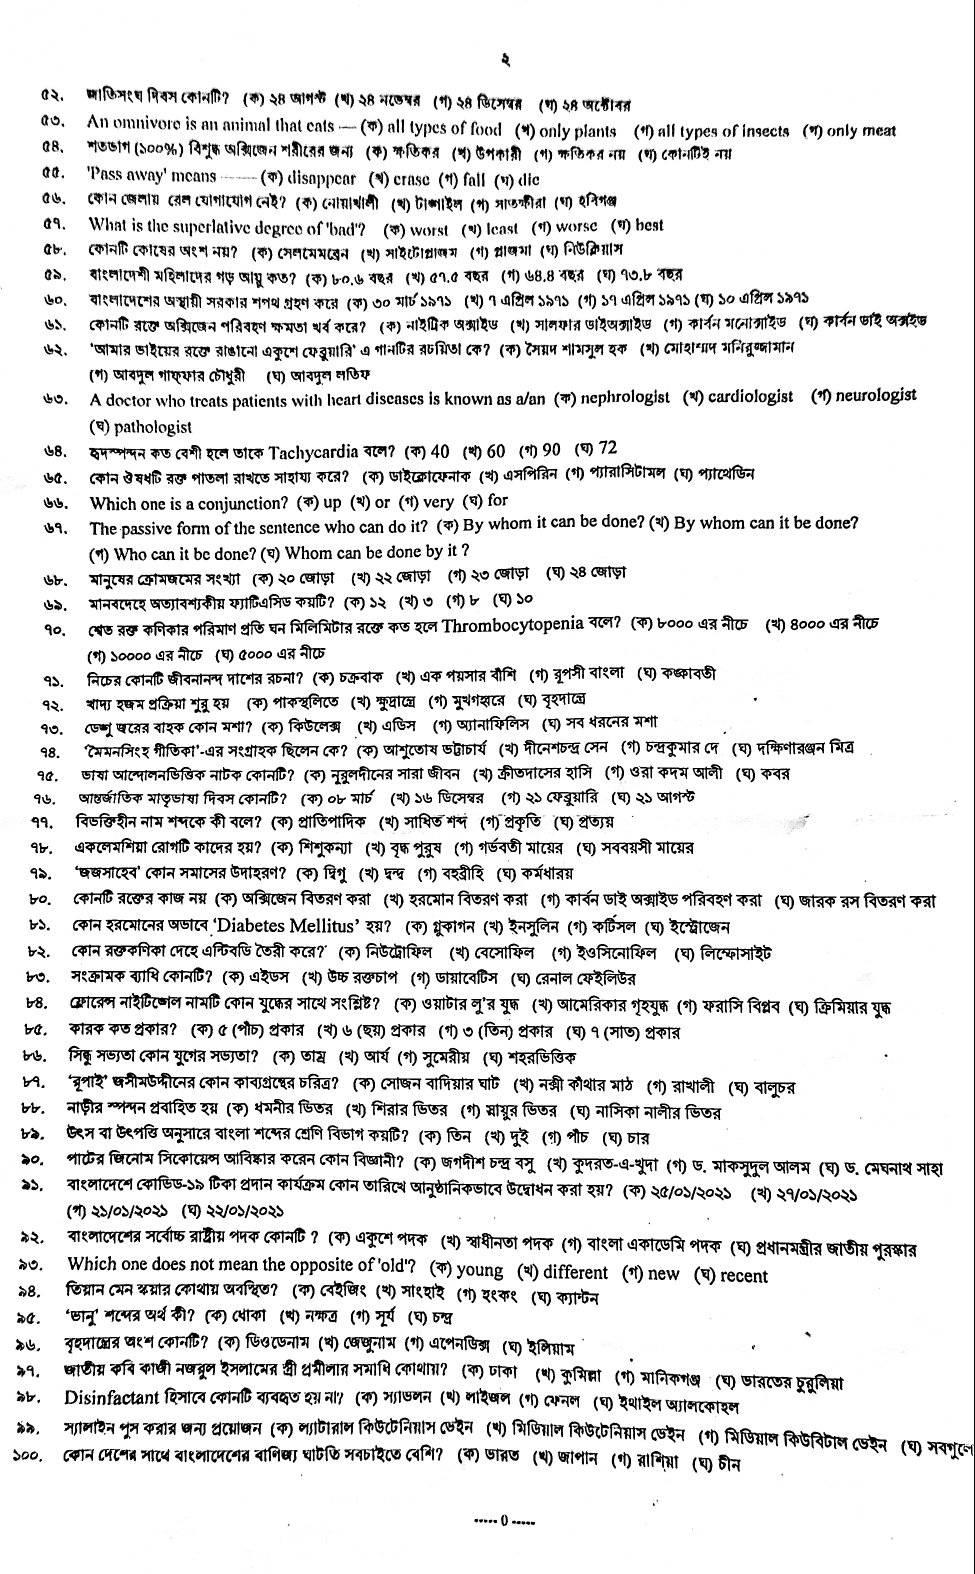 BPSC Non Cadre Exam Question Full Solution 2021